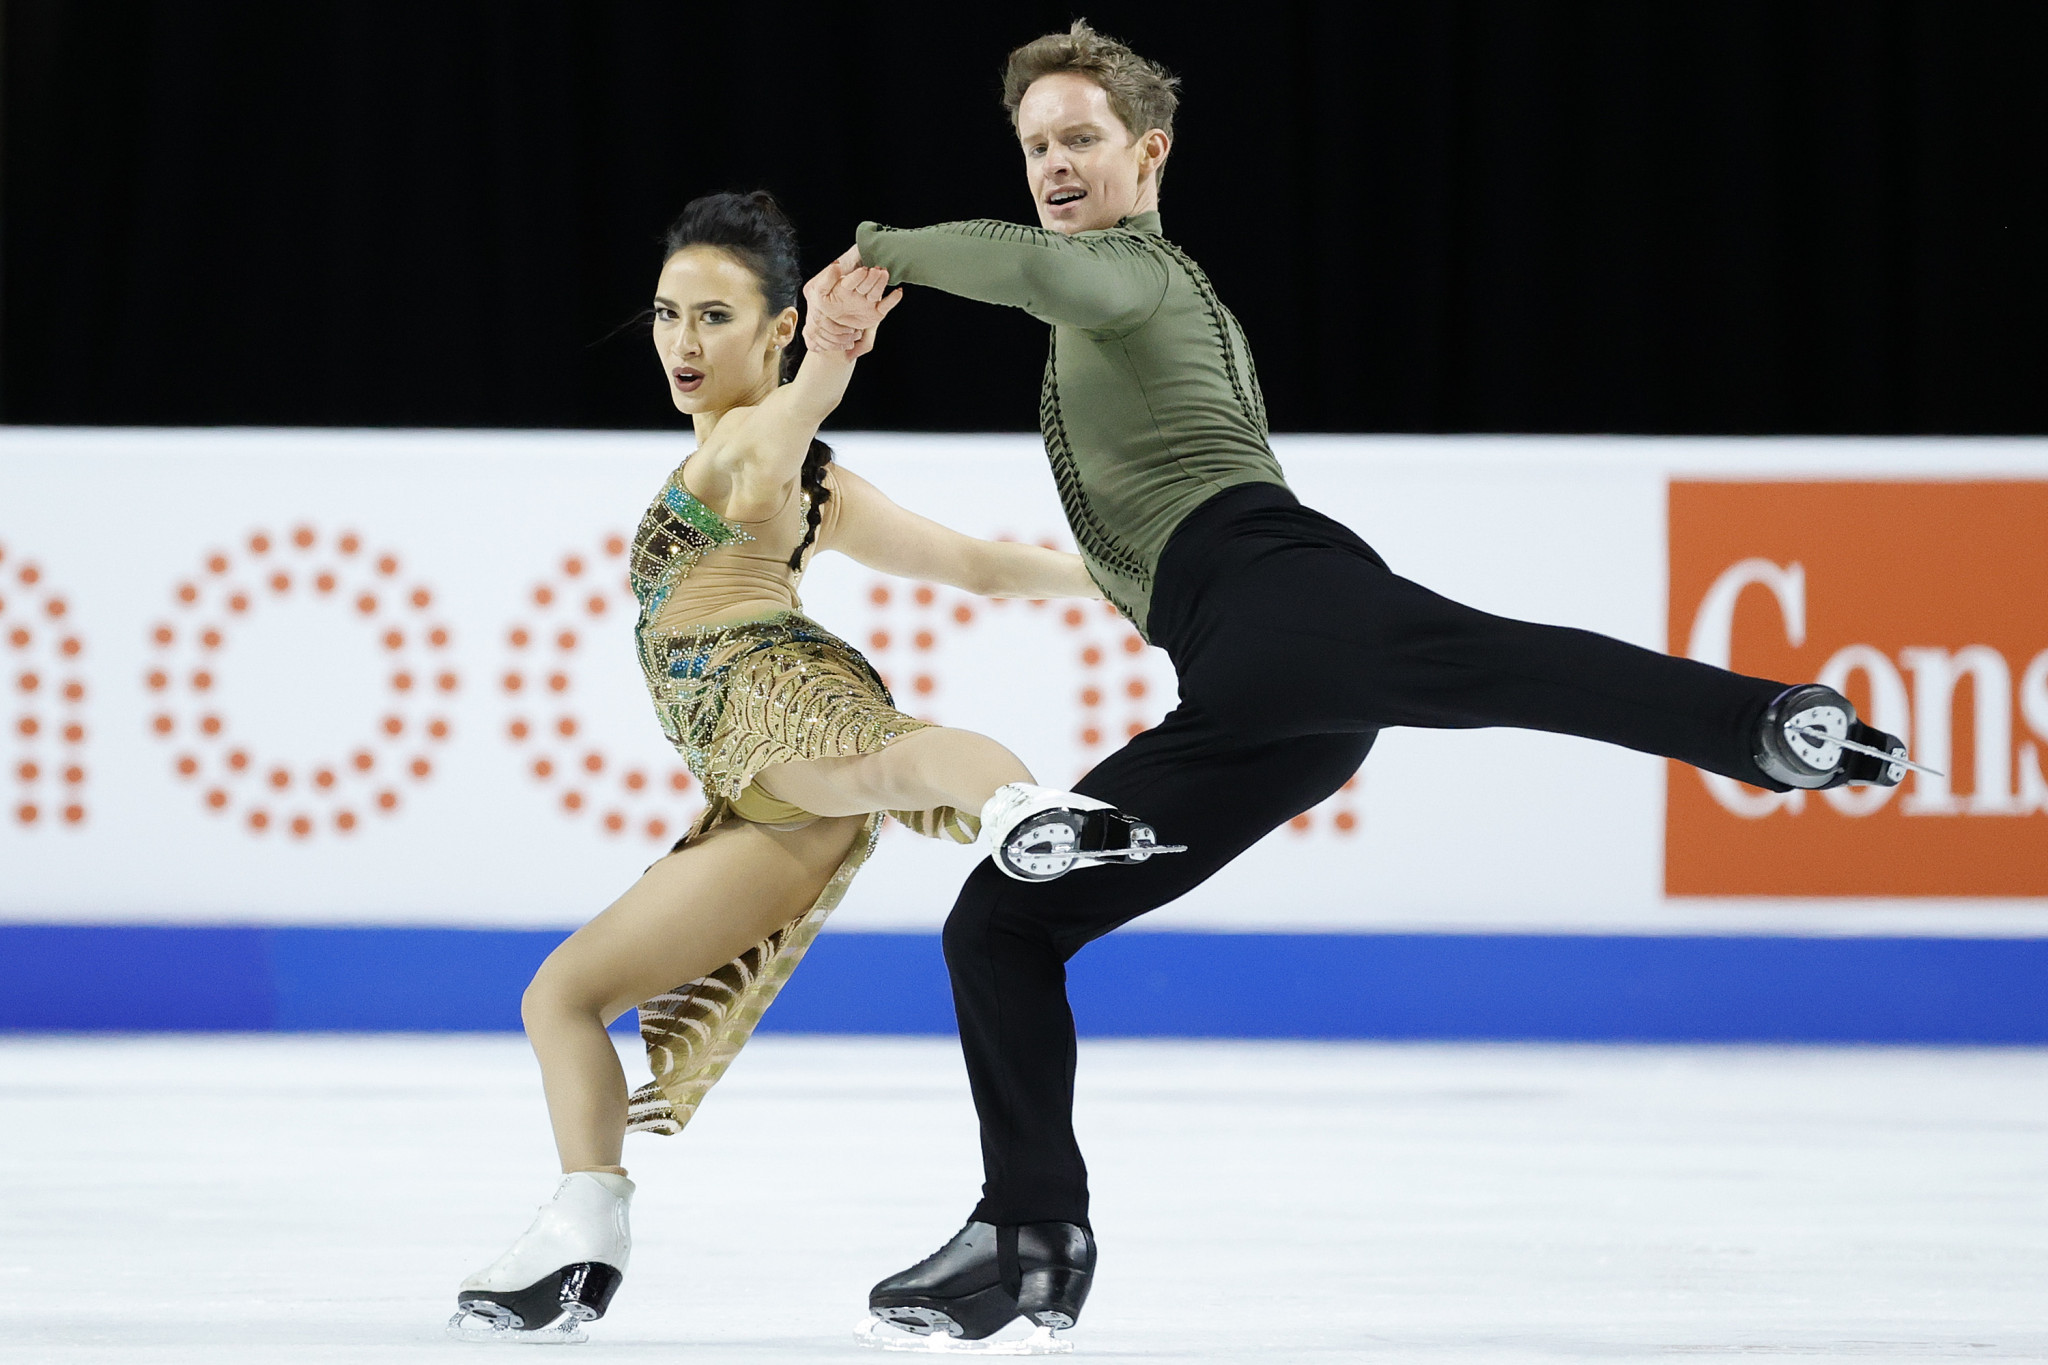 """American figure skater Bates decries """"terrible"""" situation faced by Uyghurs in Xinjiang region"""